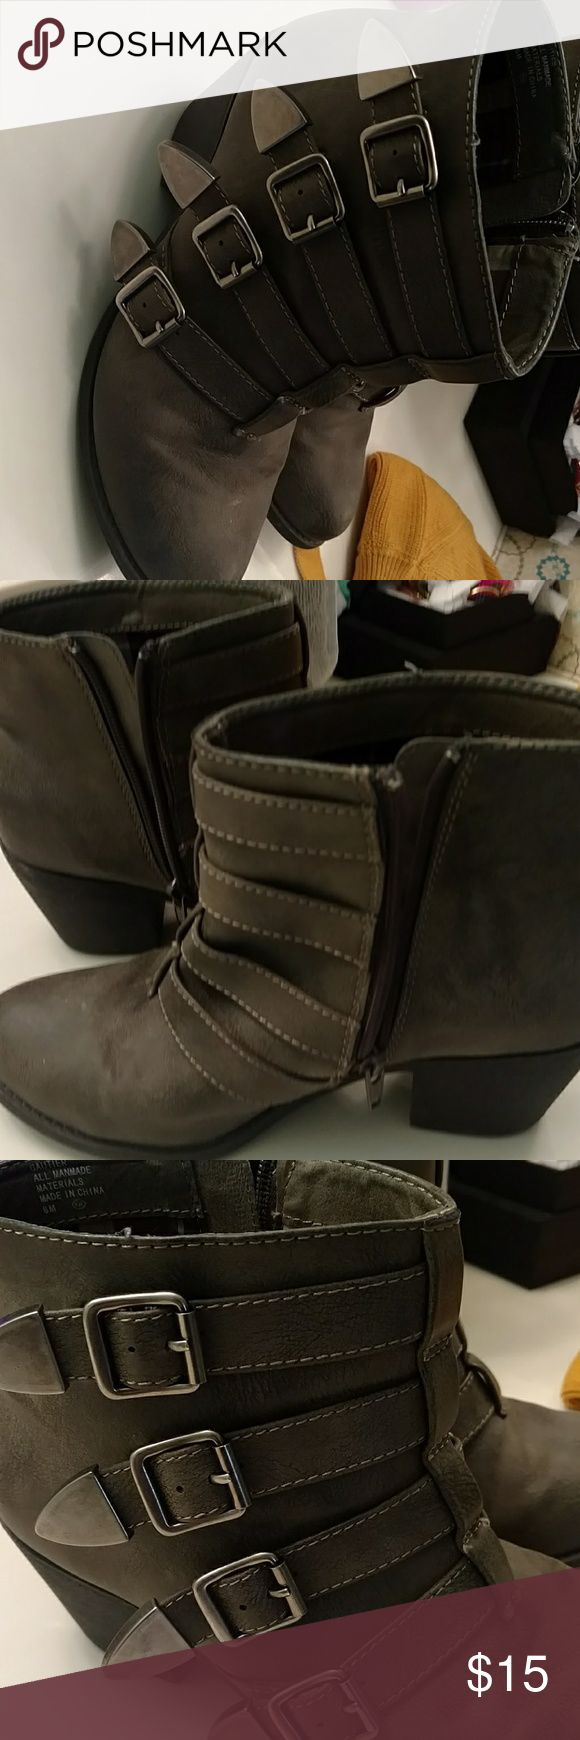 Jellypop booties size 8 Jelly pop booties.  Women's size 8. Very clean and great preowned condition.   Made of suede material.  Has a 2 inch heel.  Zips up the side.  Has 4 buckles on the side. Shoes Ankle Boots & Booties